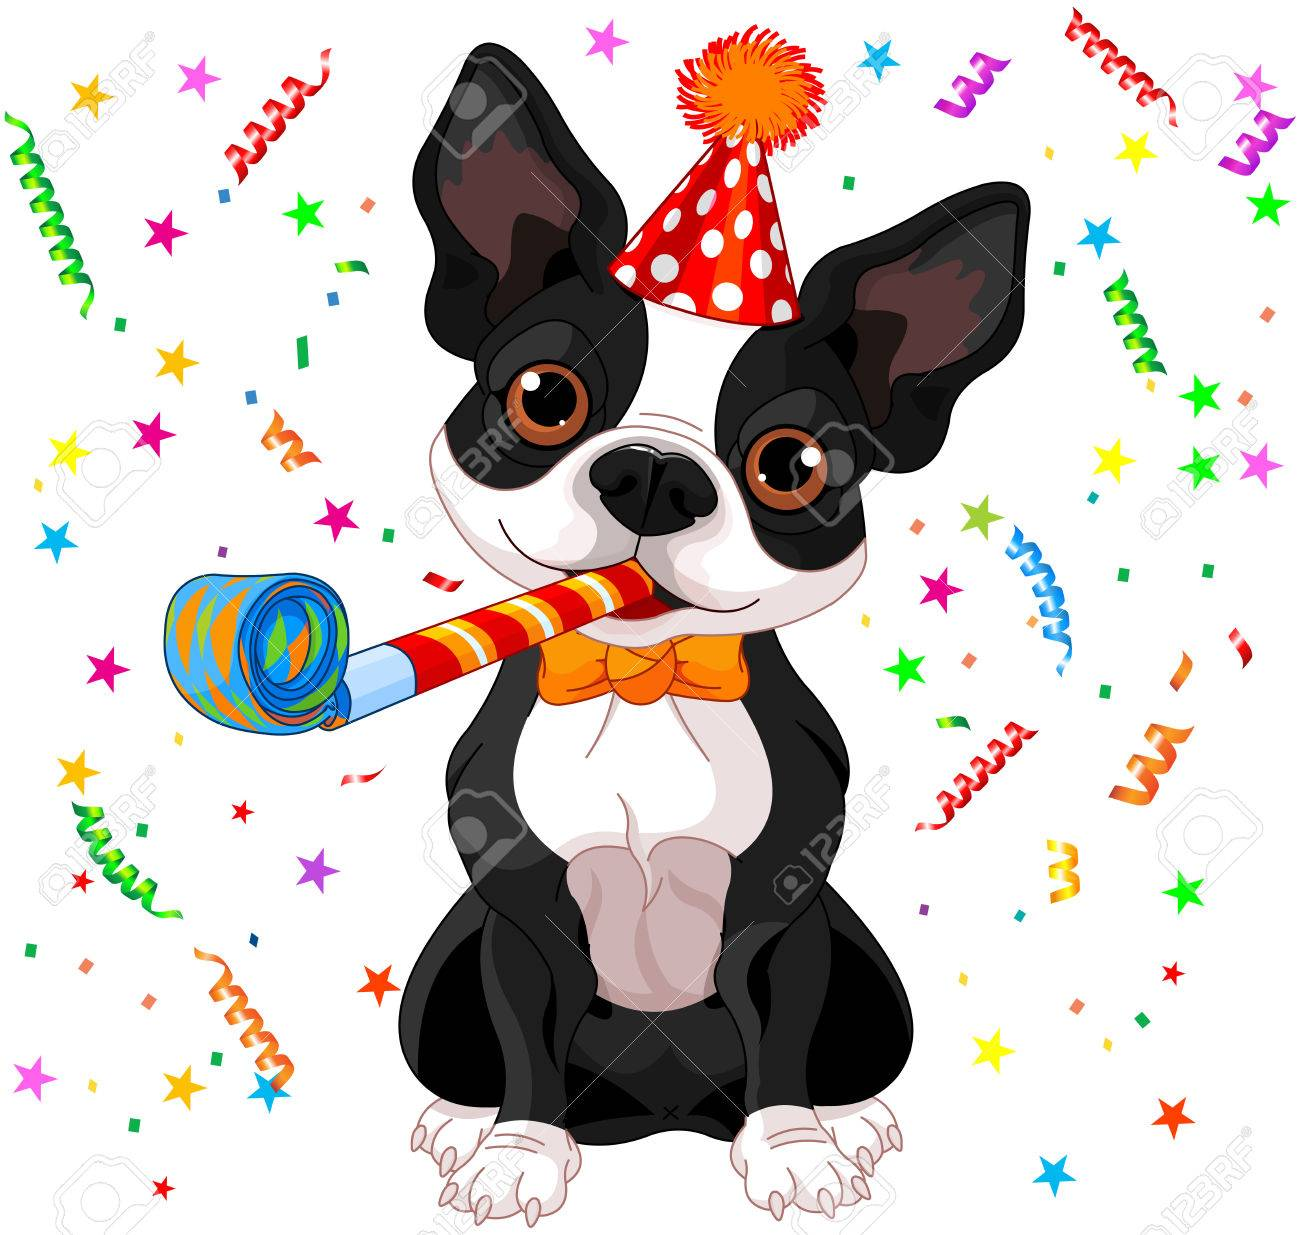 Rupture des ligaments croisés - Page 6 35588778-illustration-of-cute-boston-terrier-celebrating